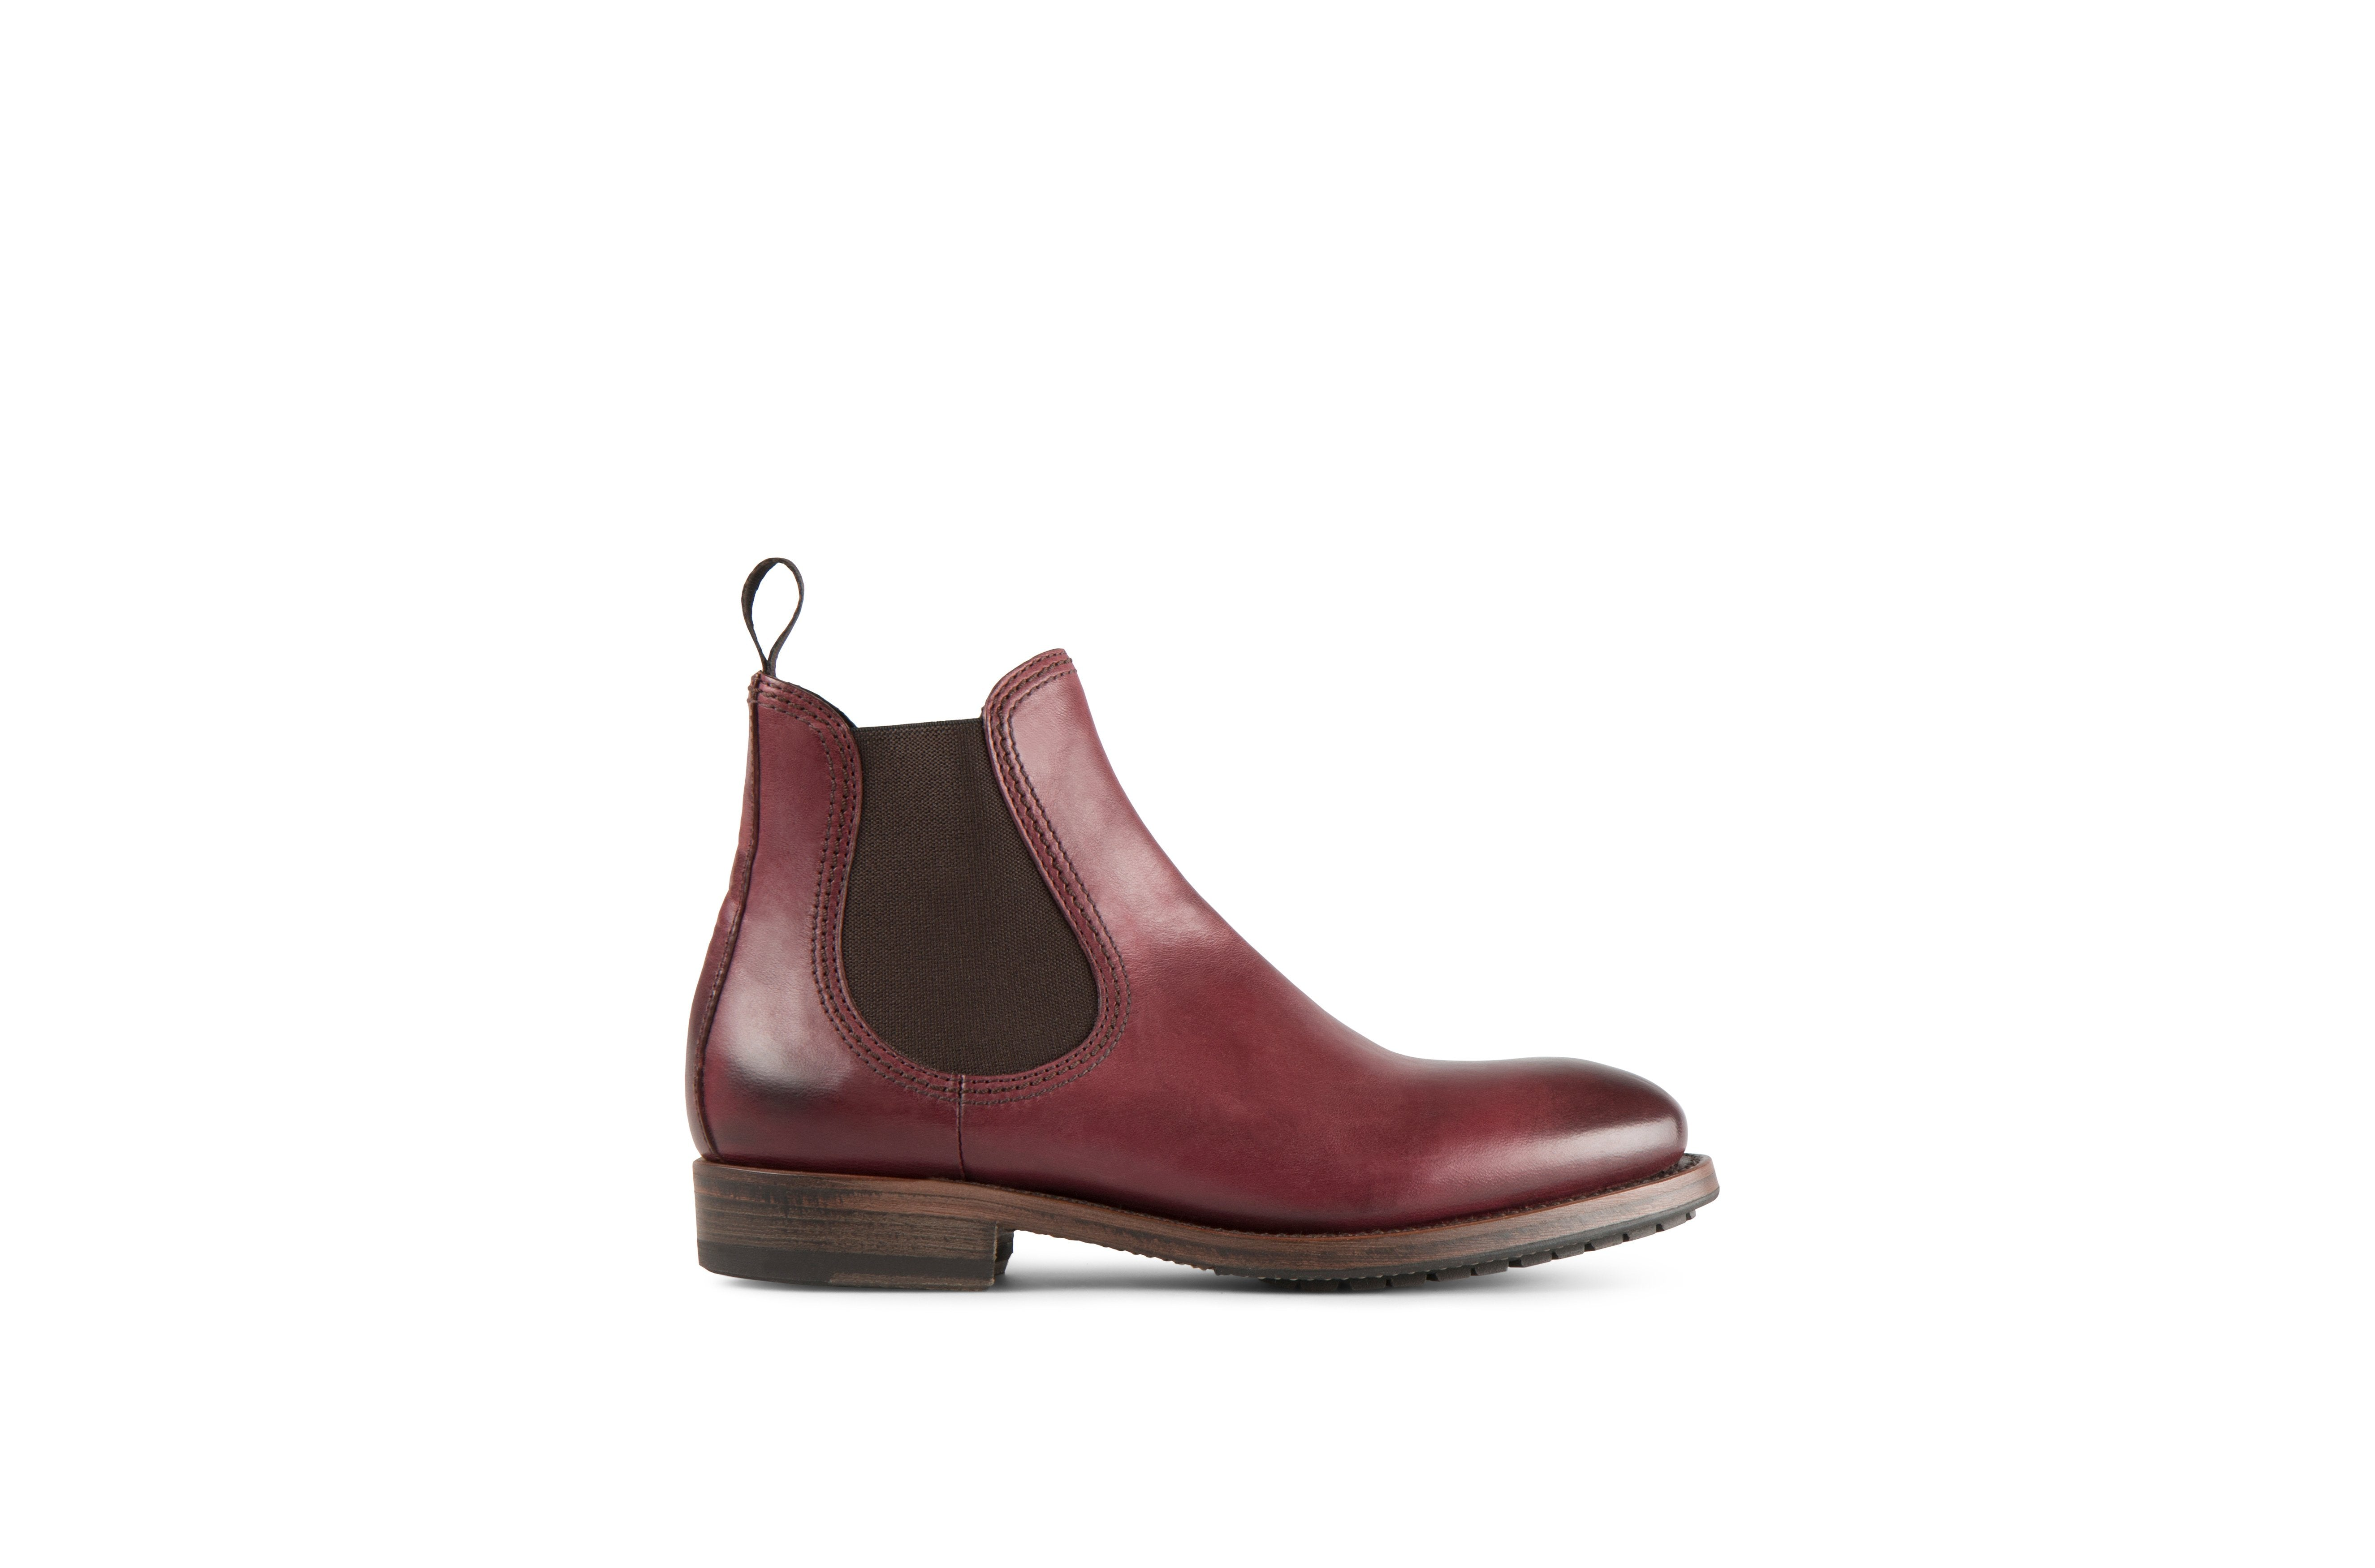 Hanoi Burgundy Cordovan Leather Chelsea Boots